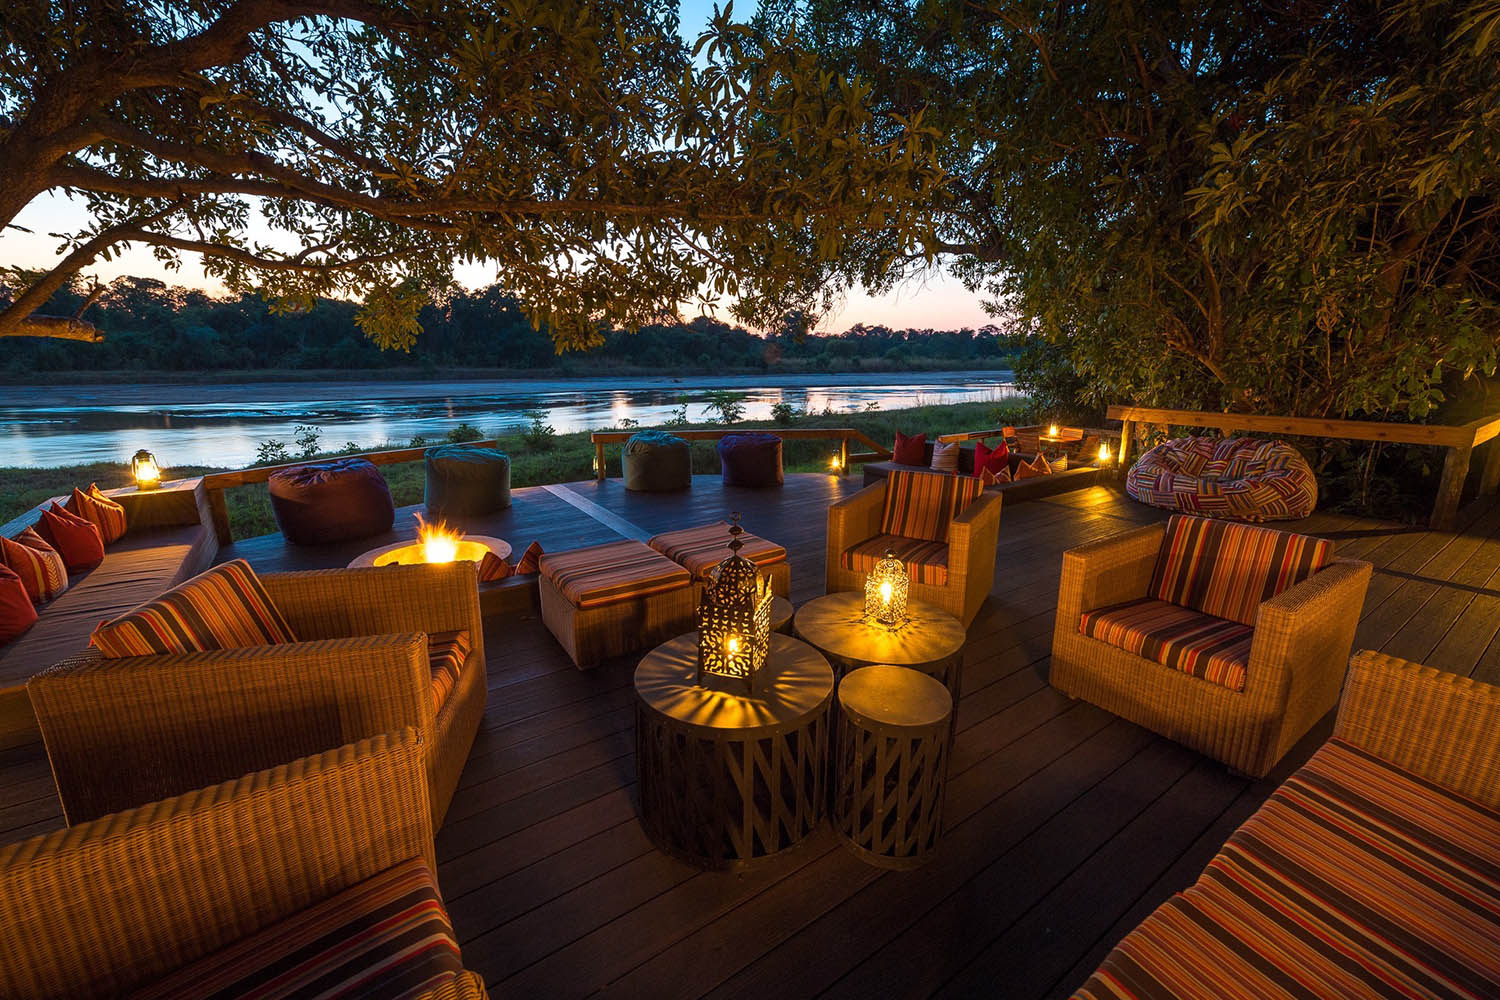 kapamba bushcamp lodge-zambia-in-style-tours-travel-safari-packages-lodges-south-luangwa-national-park-lounge-deck